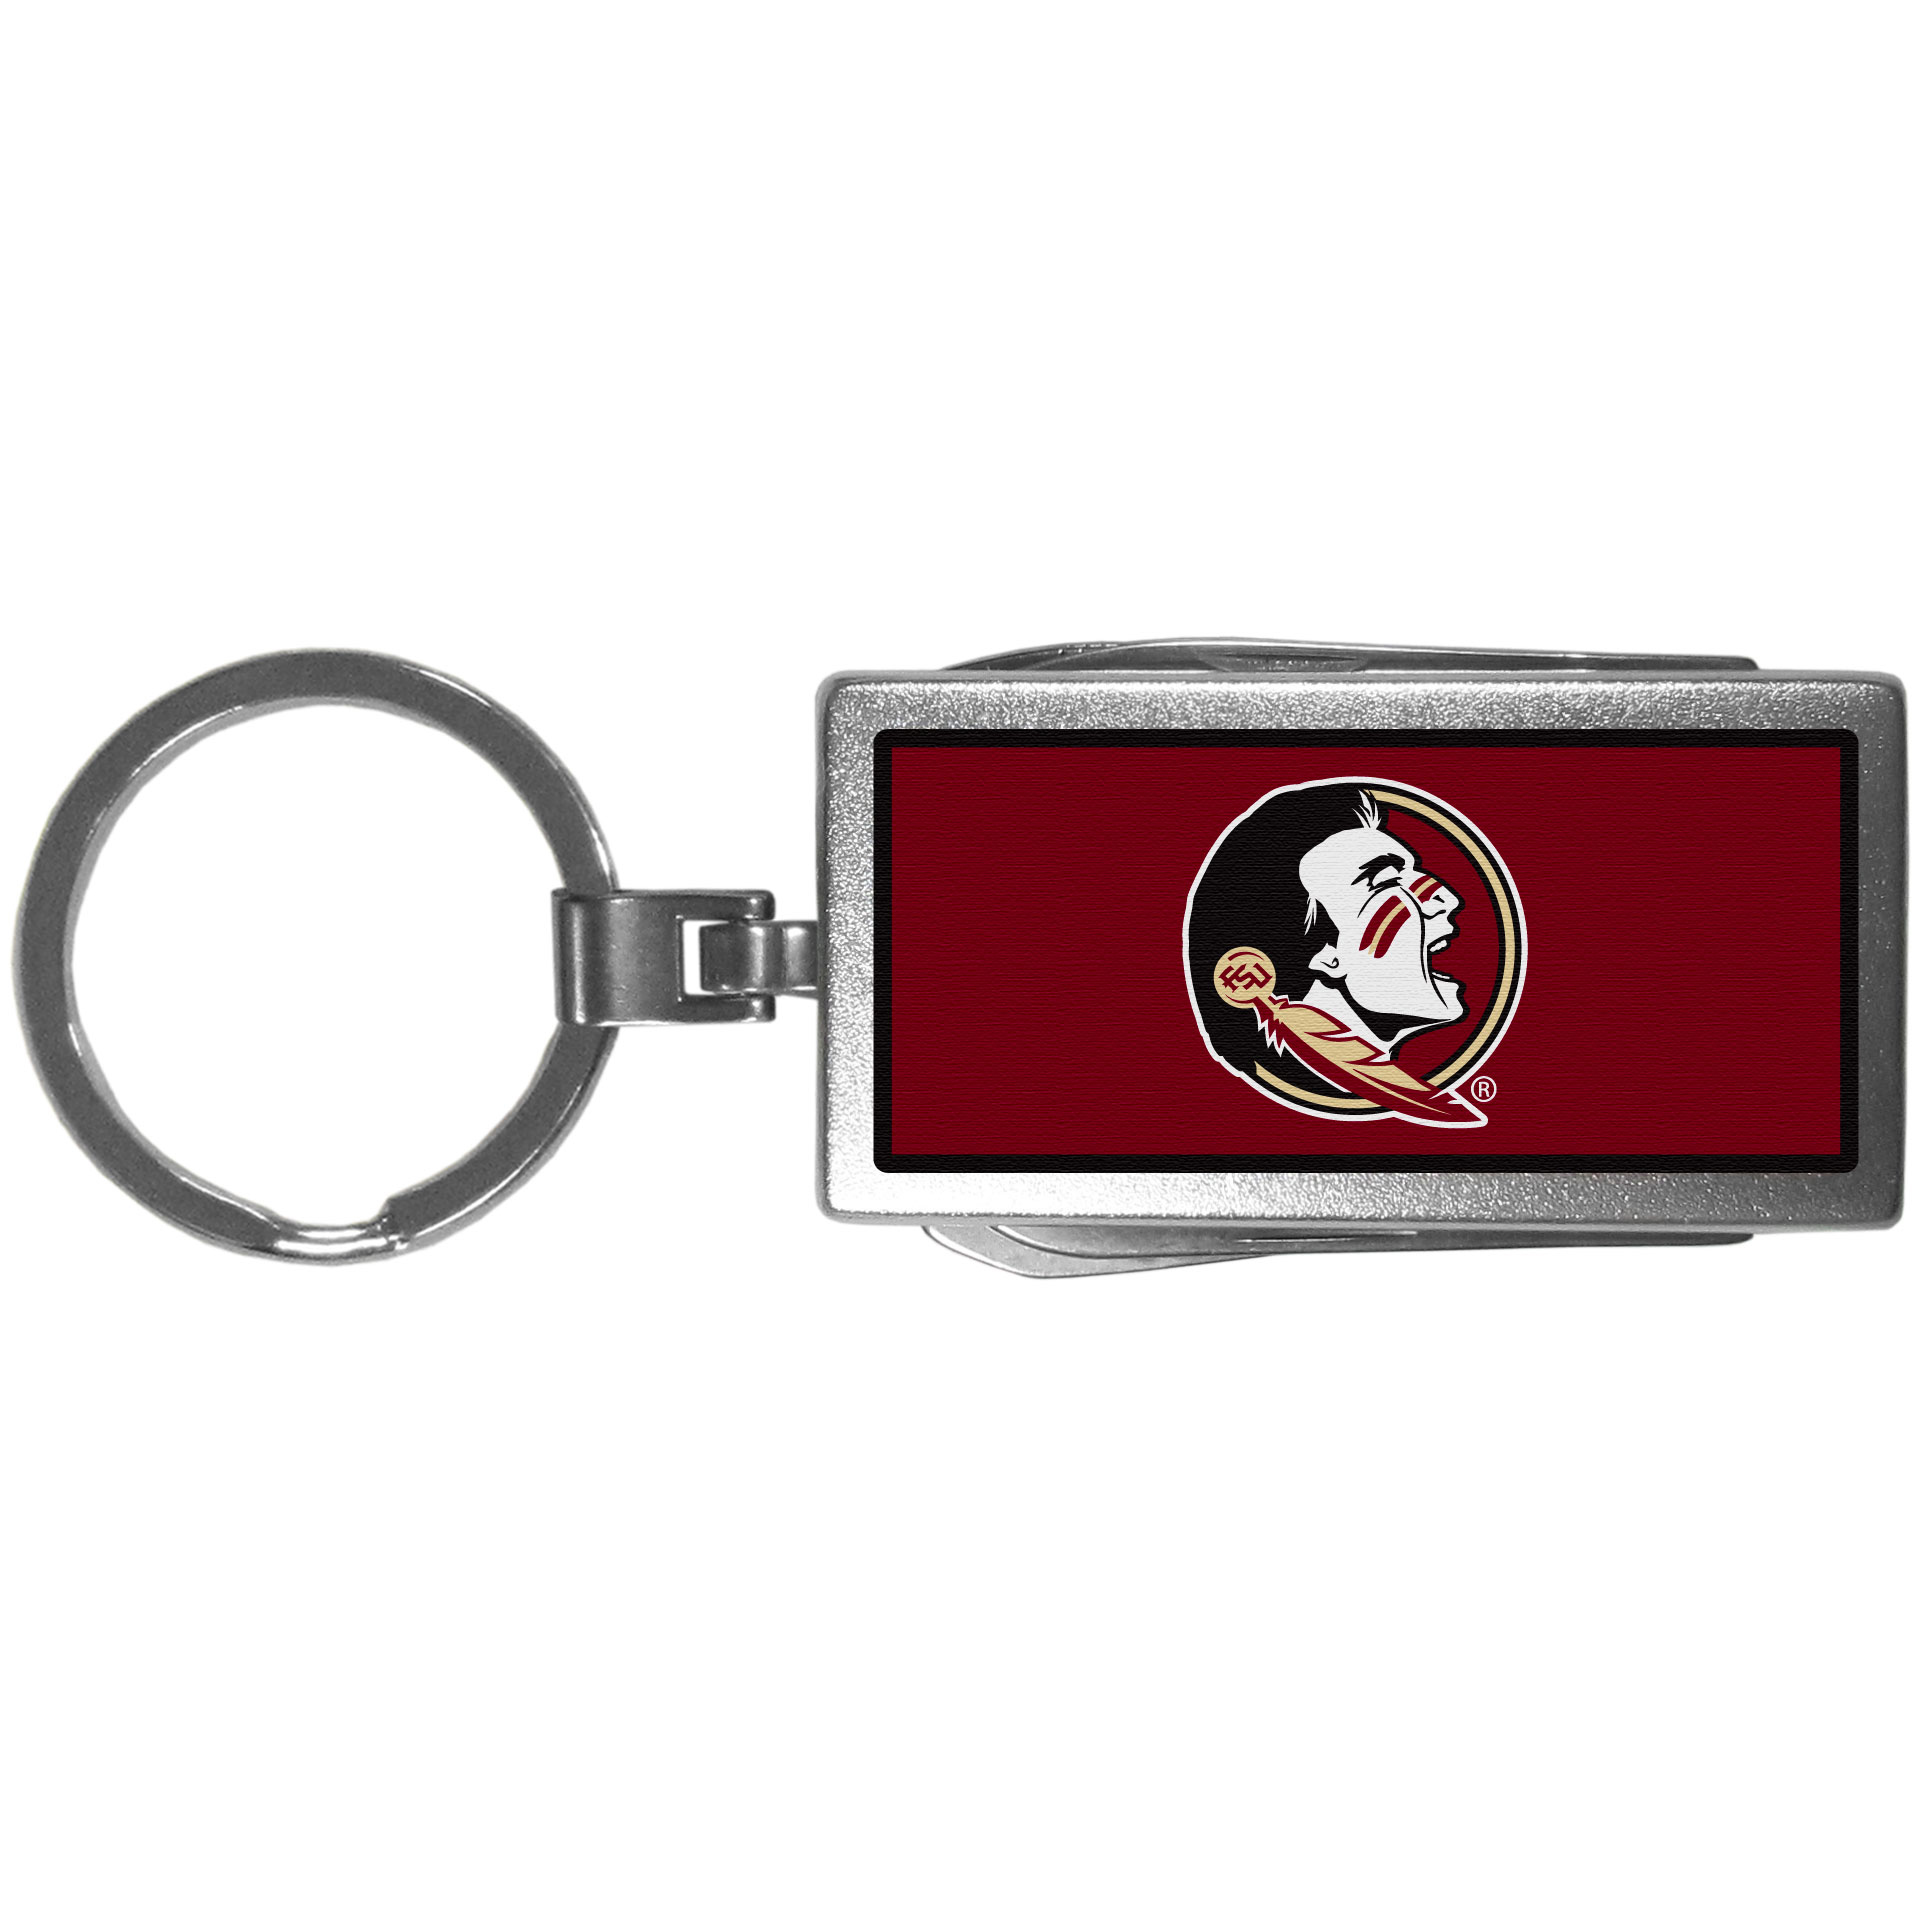 Florida St. Seminoles Multi-tool Key Chain, Logo - Be the hero at the tailgate, camping, or on a Friday night with your Florida St. Seminoles Multi-Tool Keychain which comes complete with bottle opener, scissors, knife, nail file and screw driver. Be it opening a package or a beverage Siskiyou's Multi-Tool Keychain goes wherever your keys do. The keychain hangs at 4 inches long when closed.